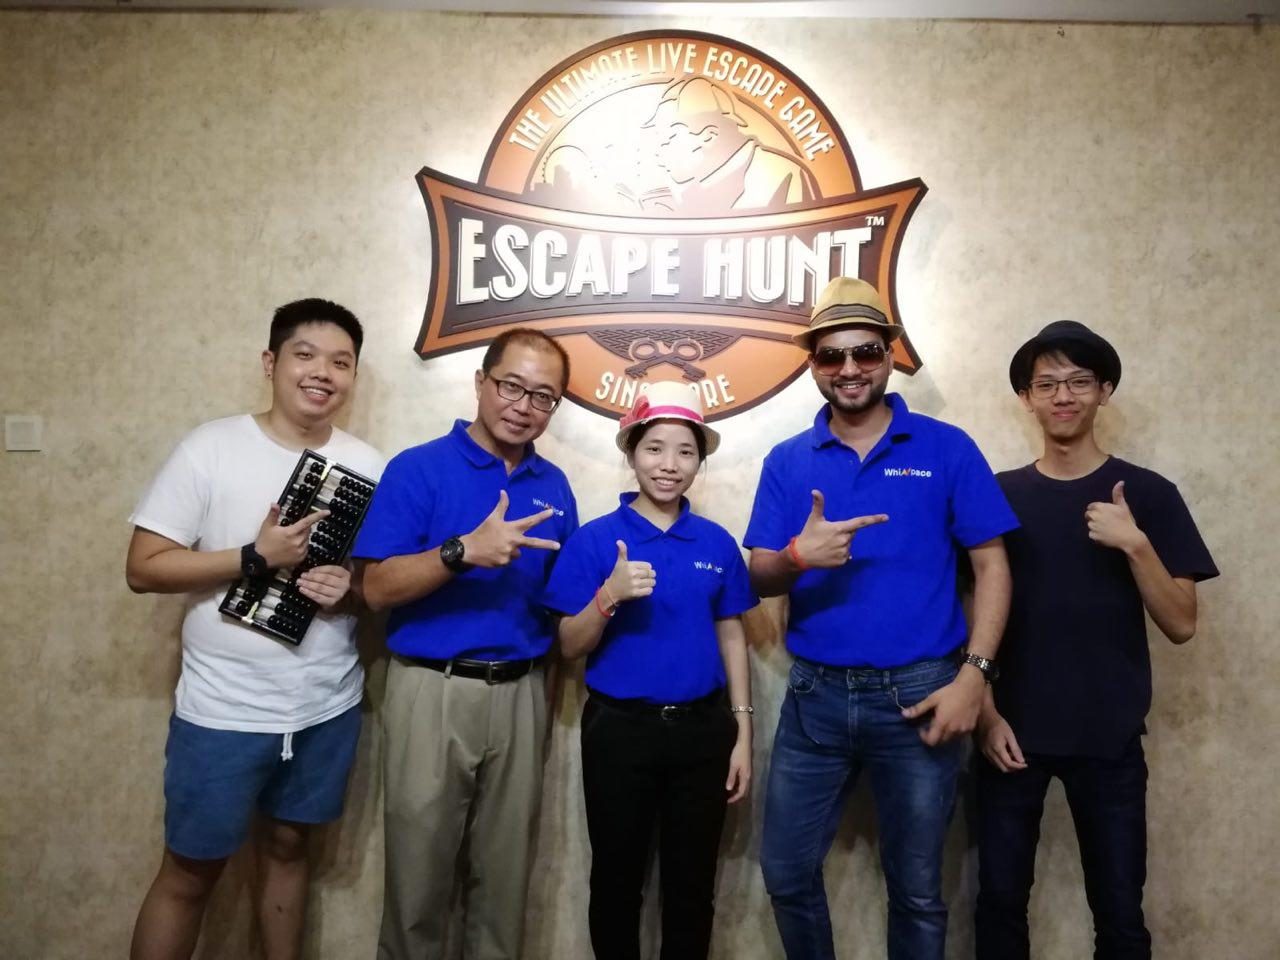 Escape hunt outing